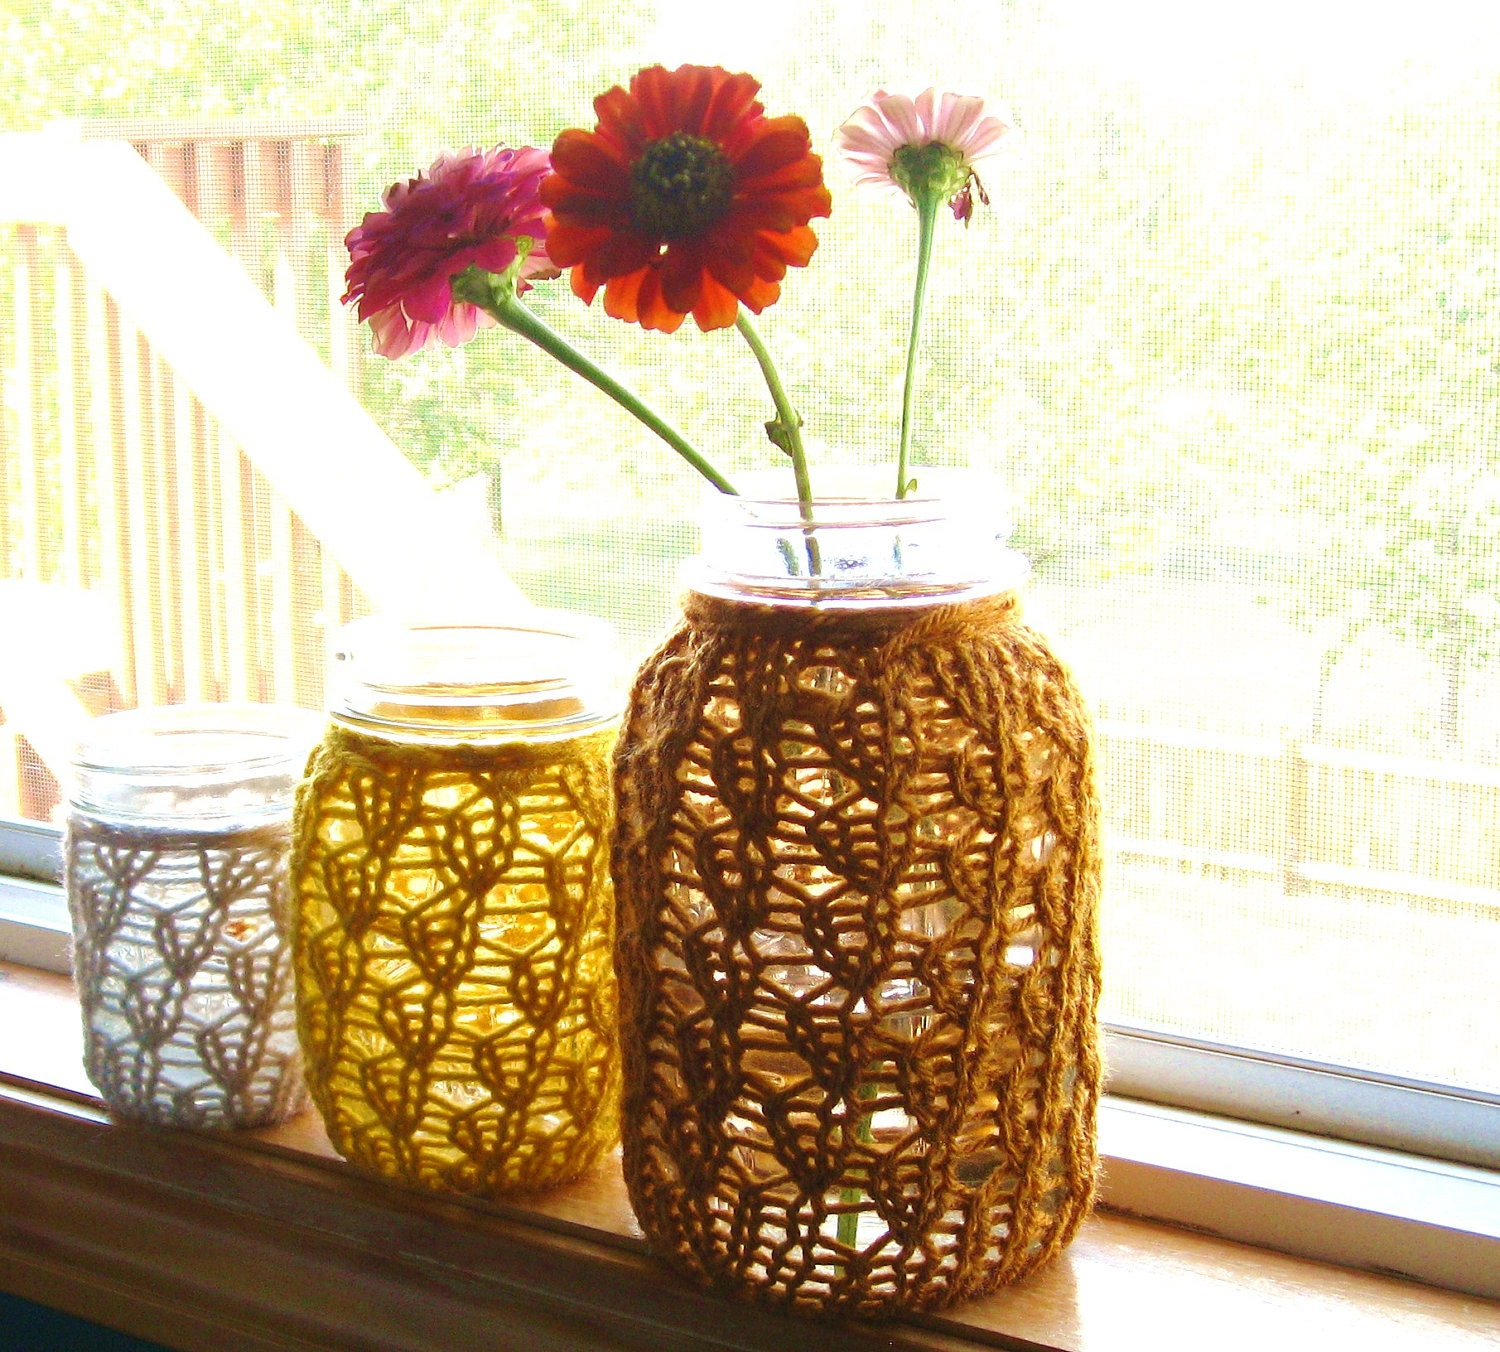 Mason Jar Wedding Centerpieces - Lace Knit - Set of 3